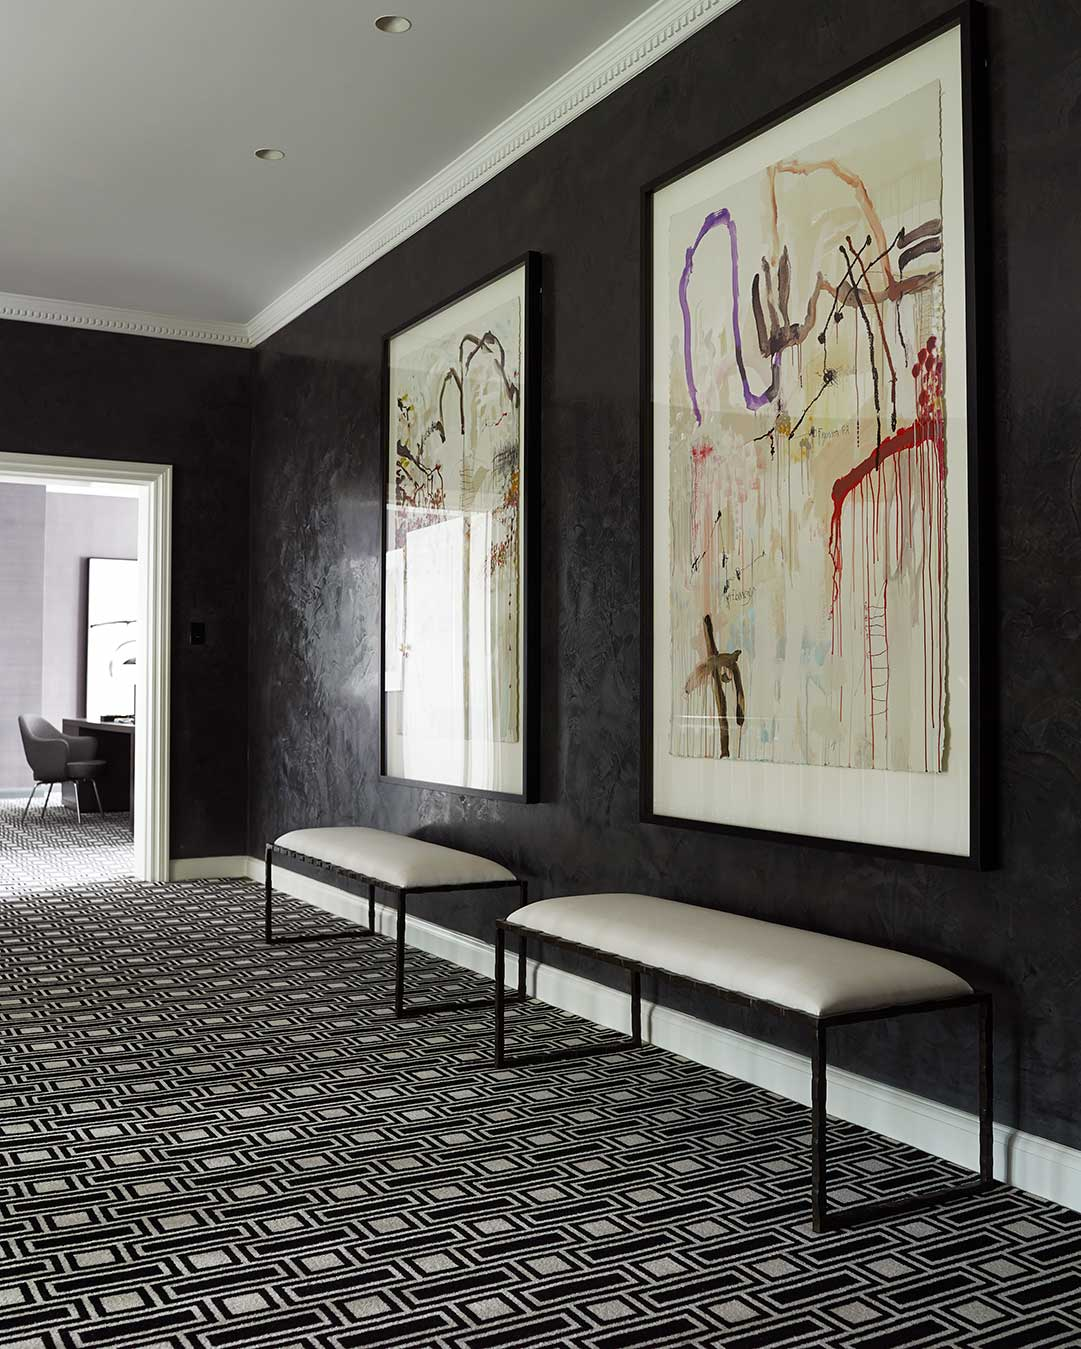 Hallway view of Tom black and white geometric Axminster carpet by Greg Natale